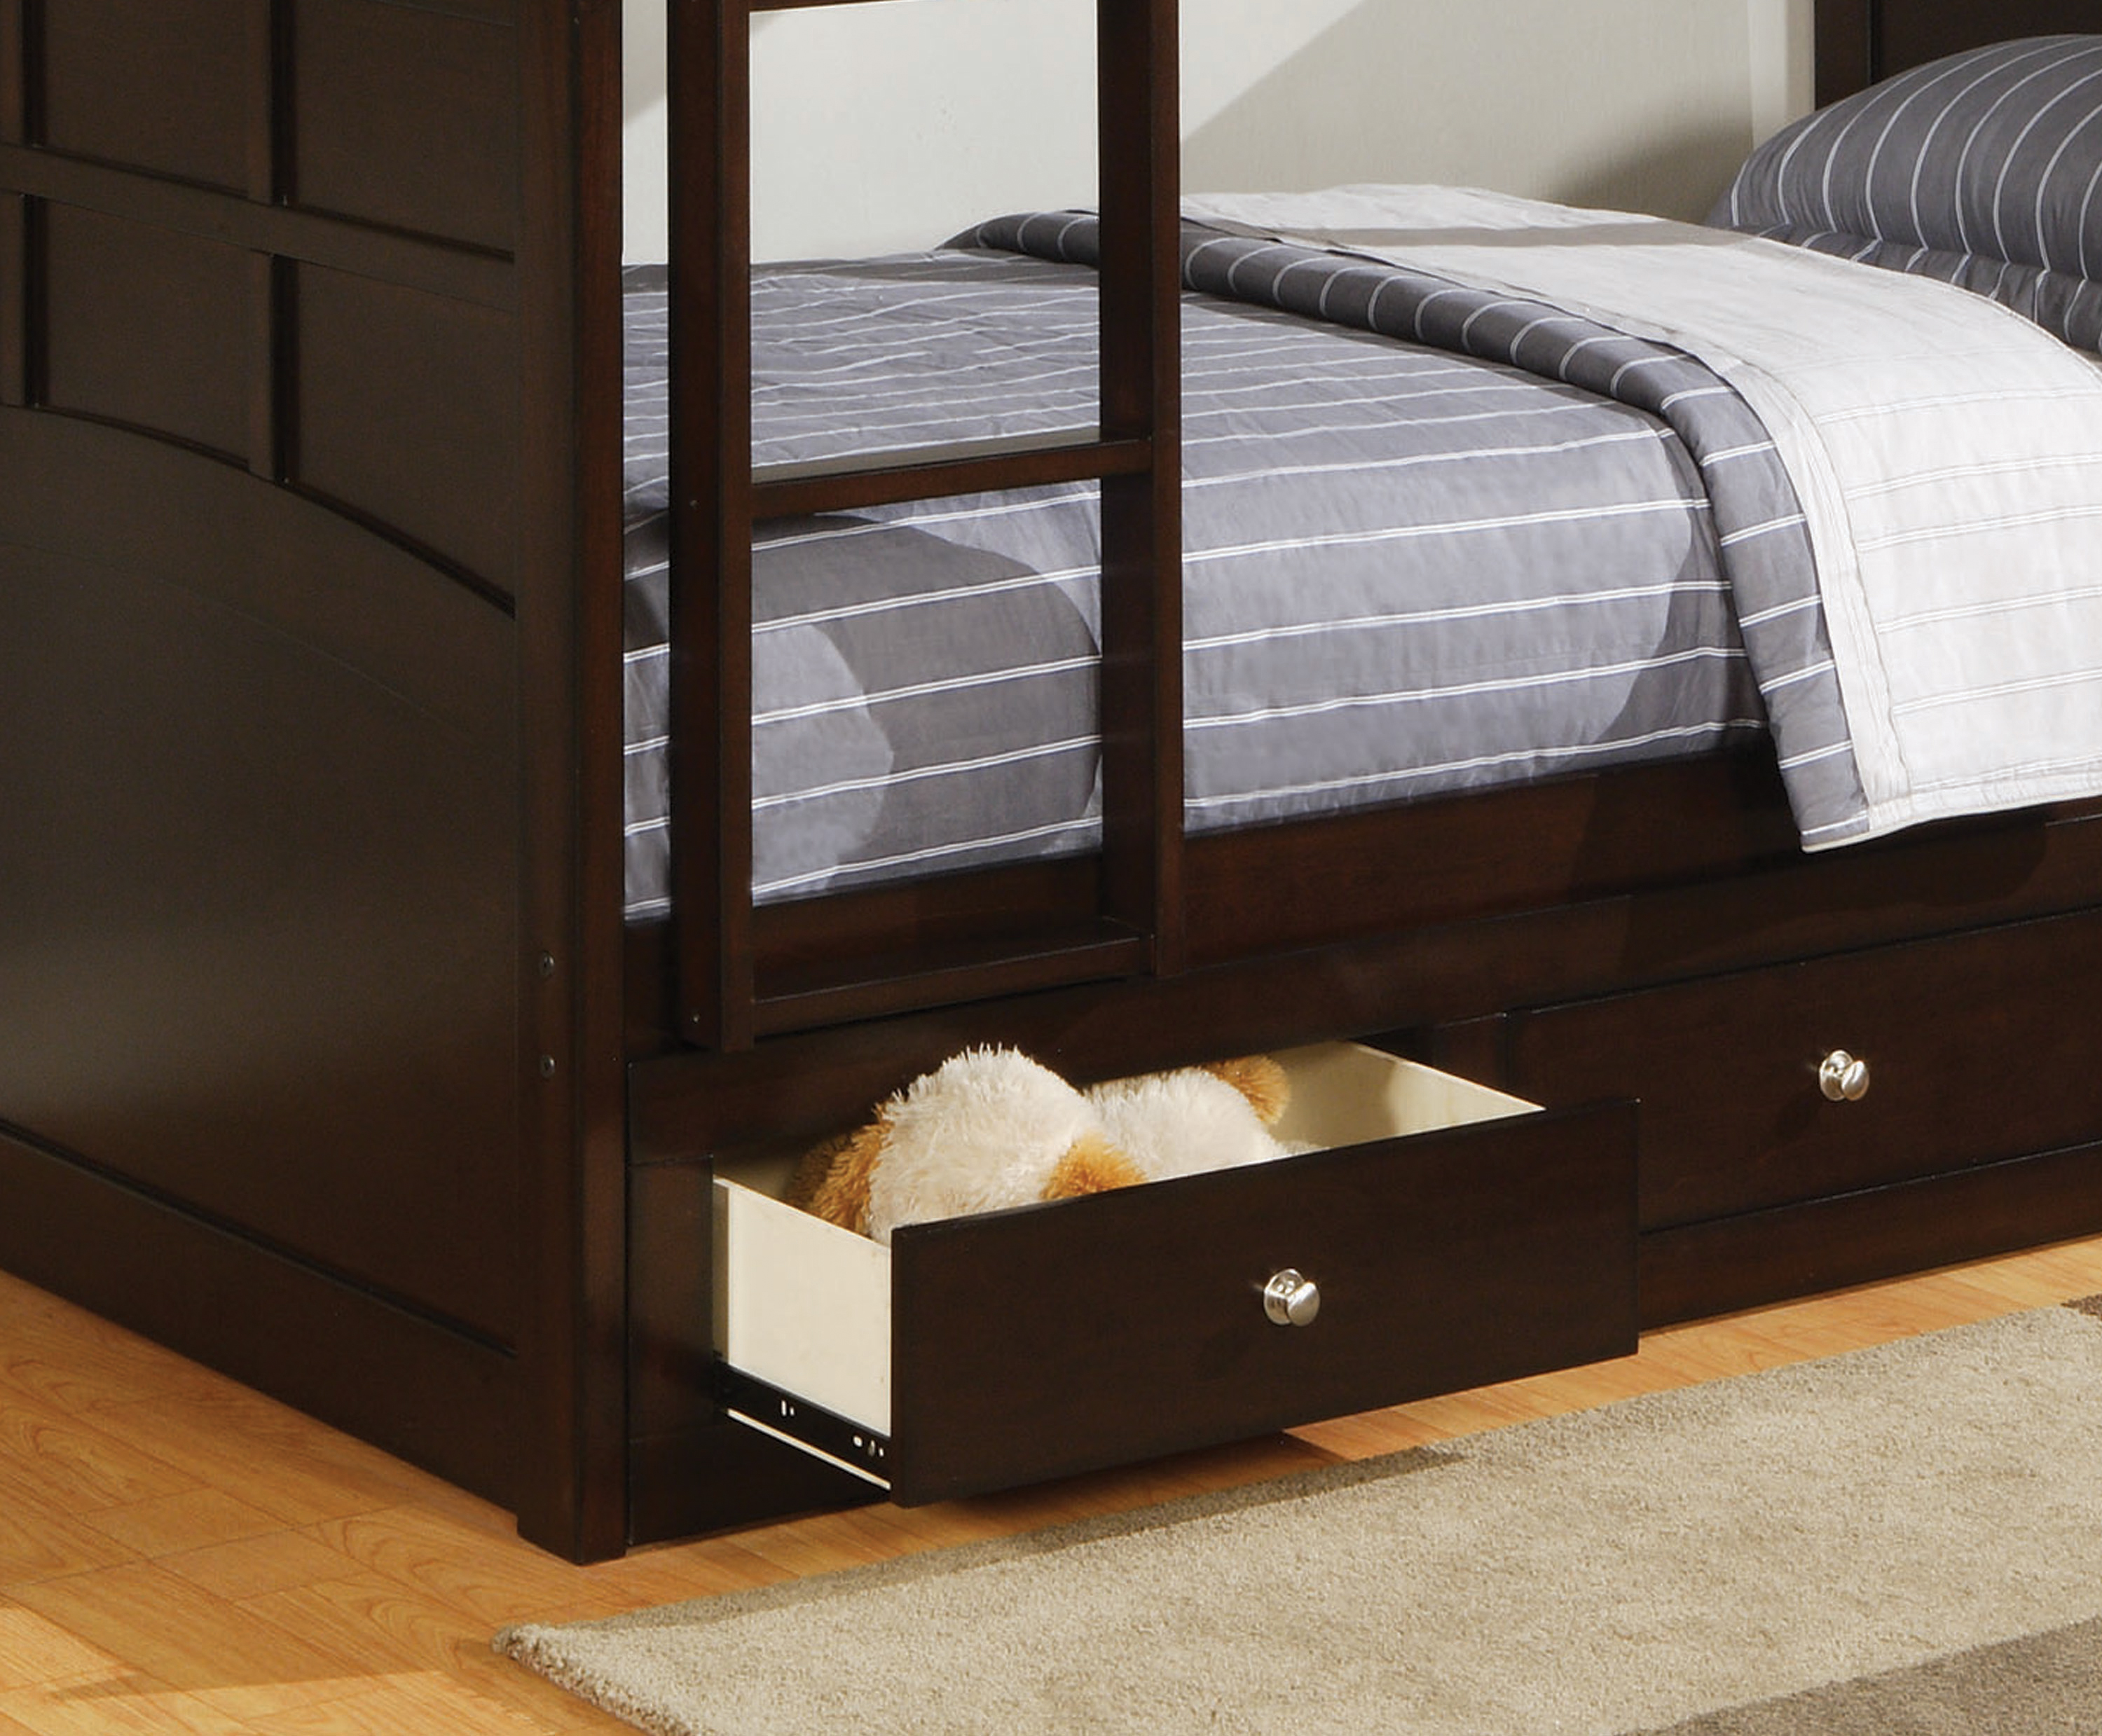 Image result for bunk bed with drawers